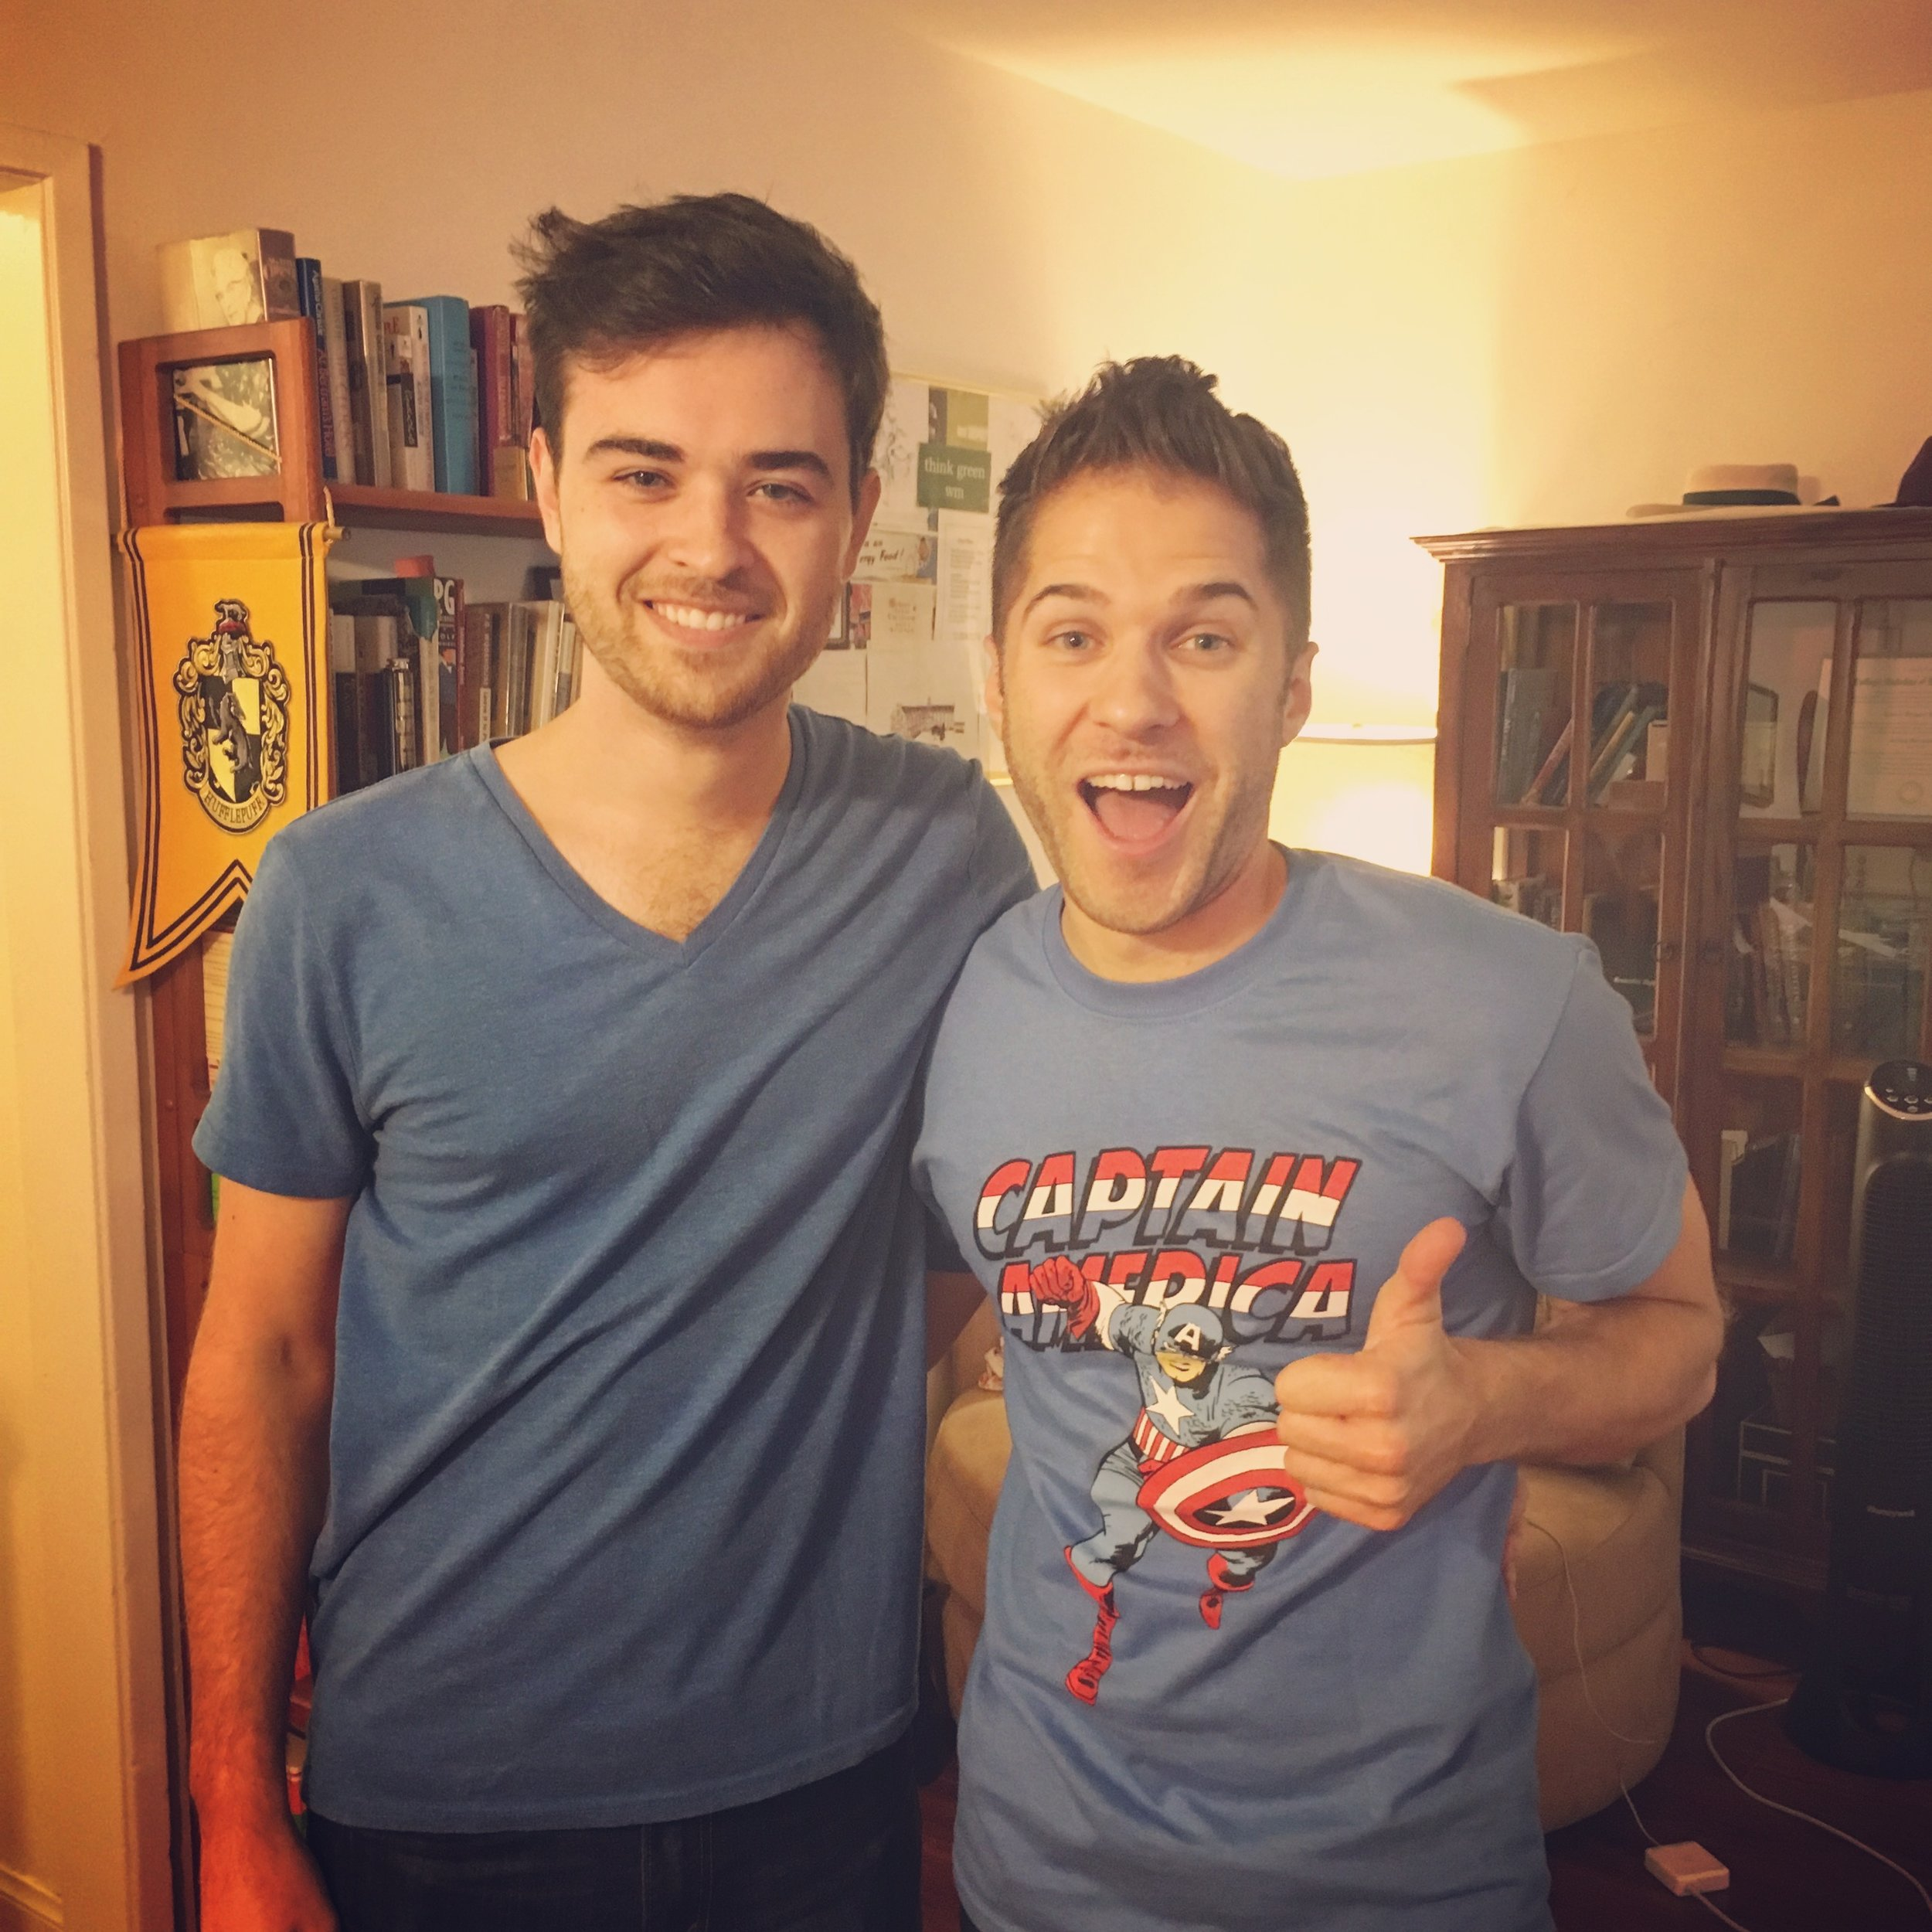 Andrew and Charlie unintentionally showed up to recording once wearing very similar outfits. They are very in sync.